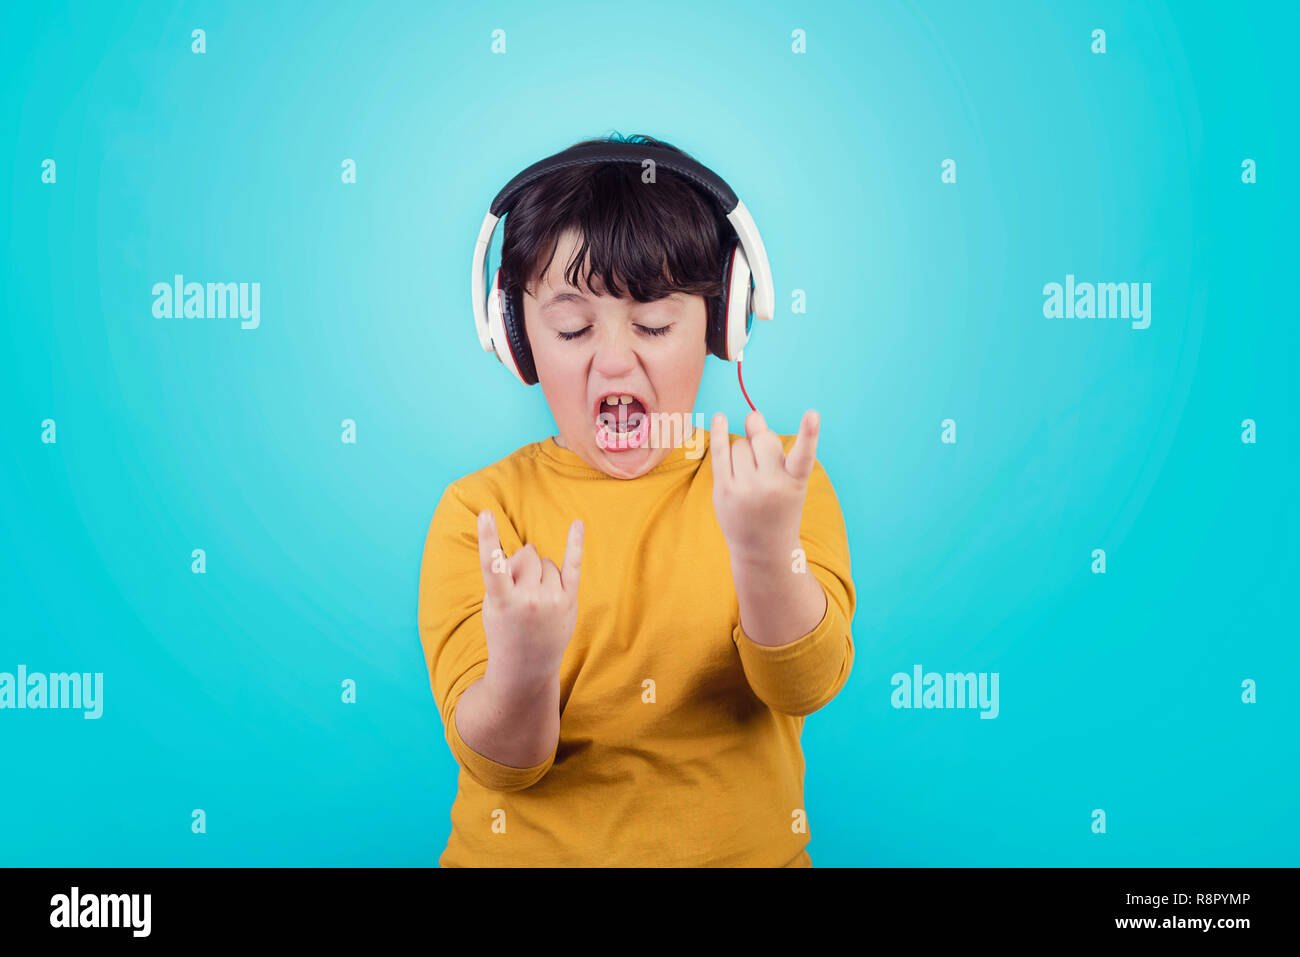 Boy with headphones showing rock sigh on blue background - Stock Image